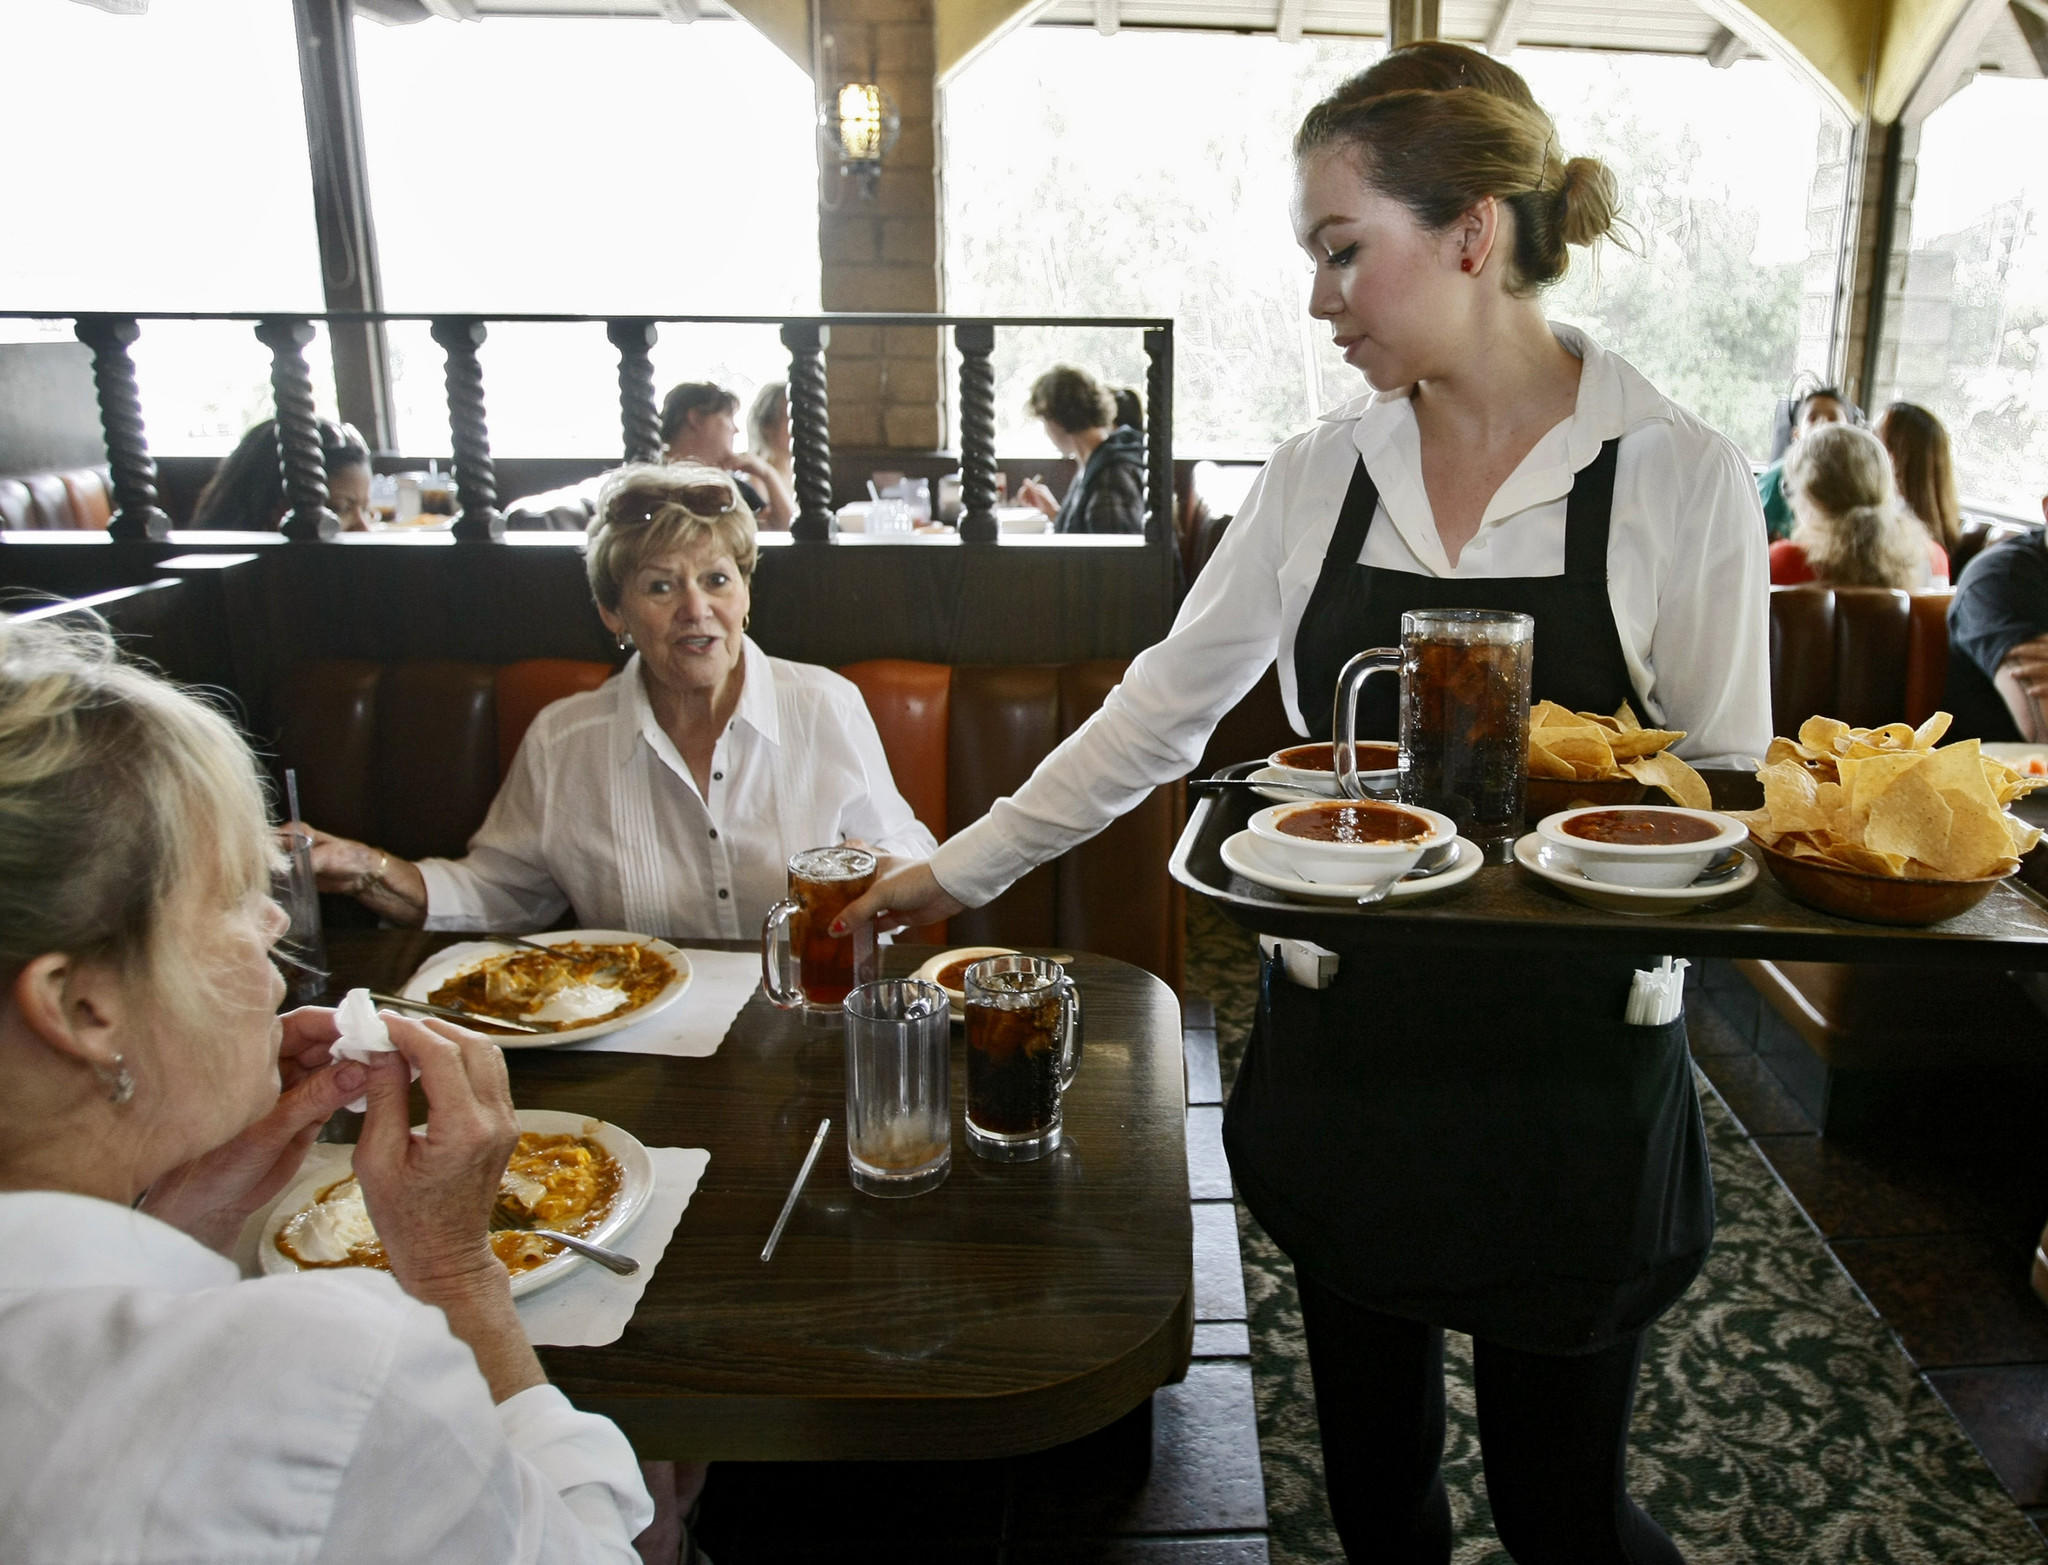 Ernie's Jr. Taco House waitress Tiffany Alvarado serves up lunch for Glendale residents Susan Schachtner, 56, left, and her mother Jackie Waldron, 80, right, at the Eagle Rock landmark restaurant on Thursday, April 17, 2014. Ernie's Jr. will close Saturday.